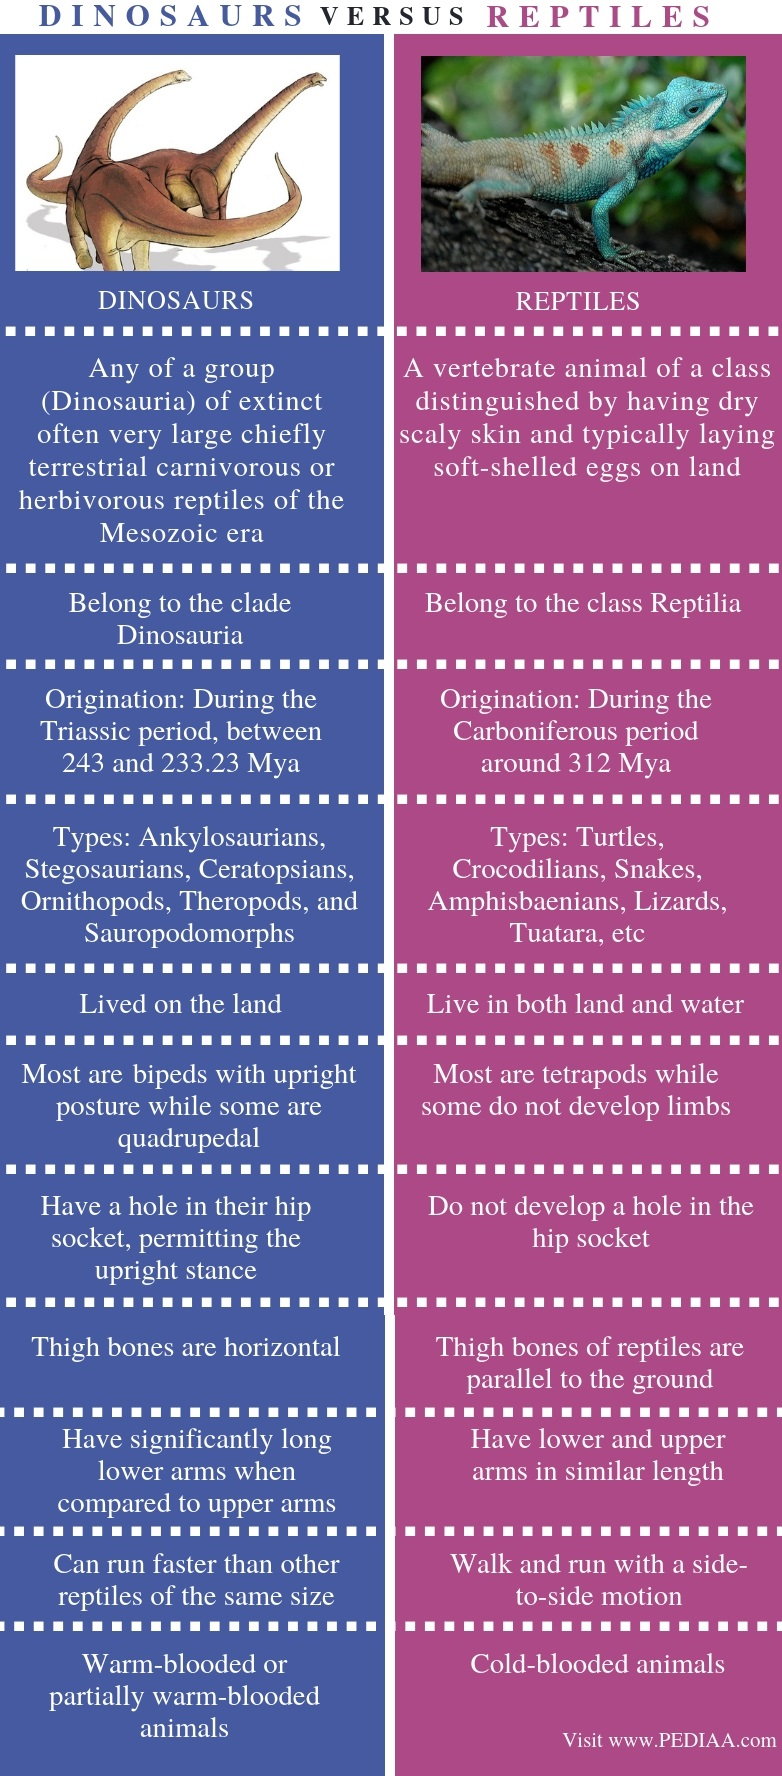 Difference Between Dinosaurs and Reptiles - Comparison Summary